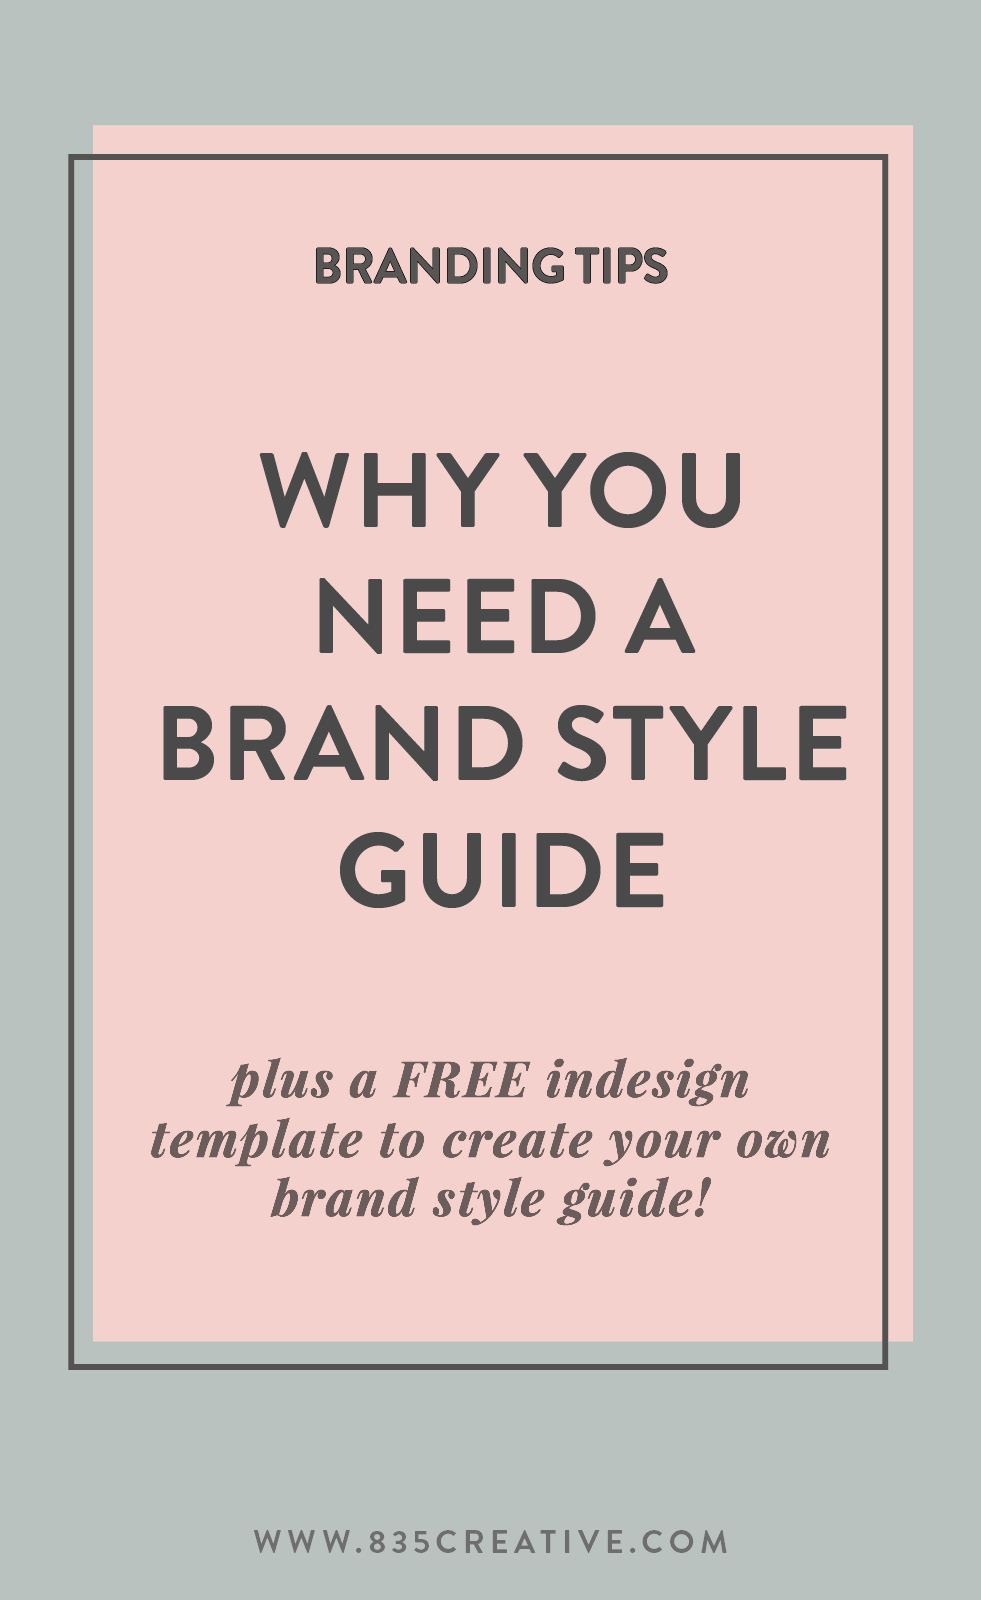 Why You Need A Brand Style Guide for Your Blog, Business or Organization.